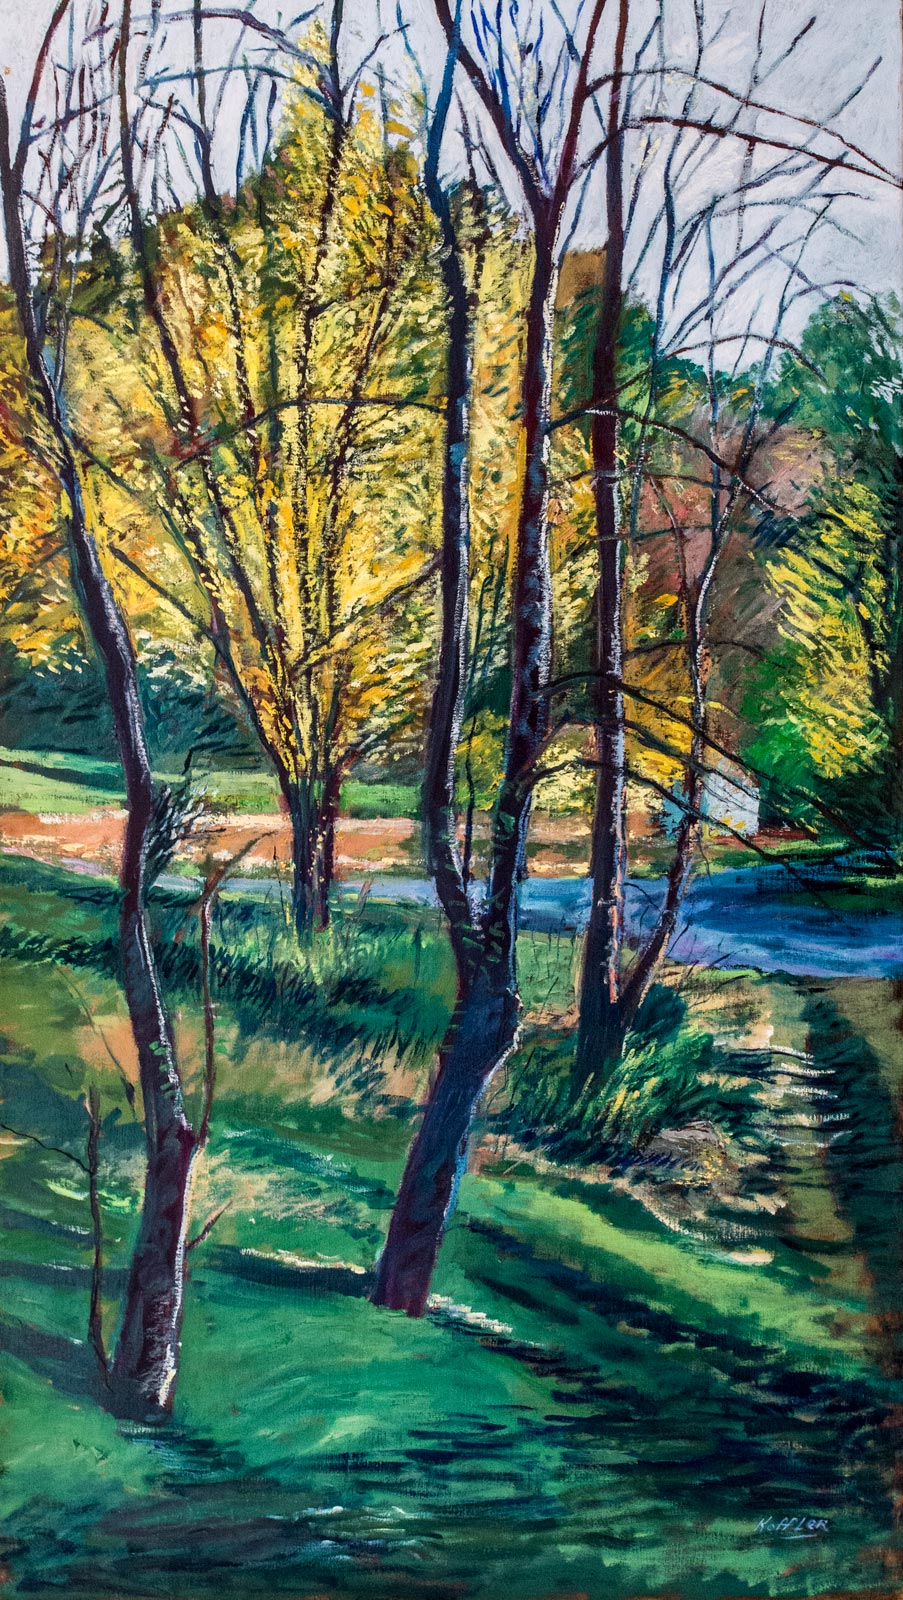 Robert-Steven-Koffler---Art-Catalog_Fall_Trees_2004_25x44